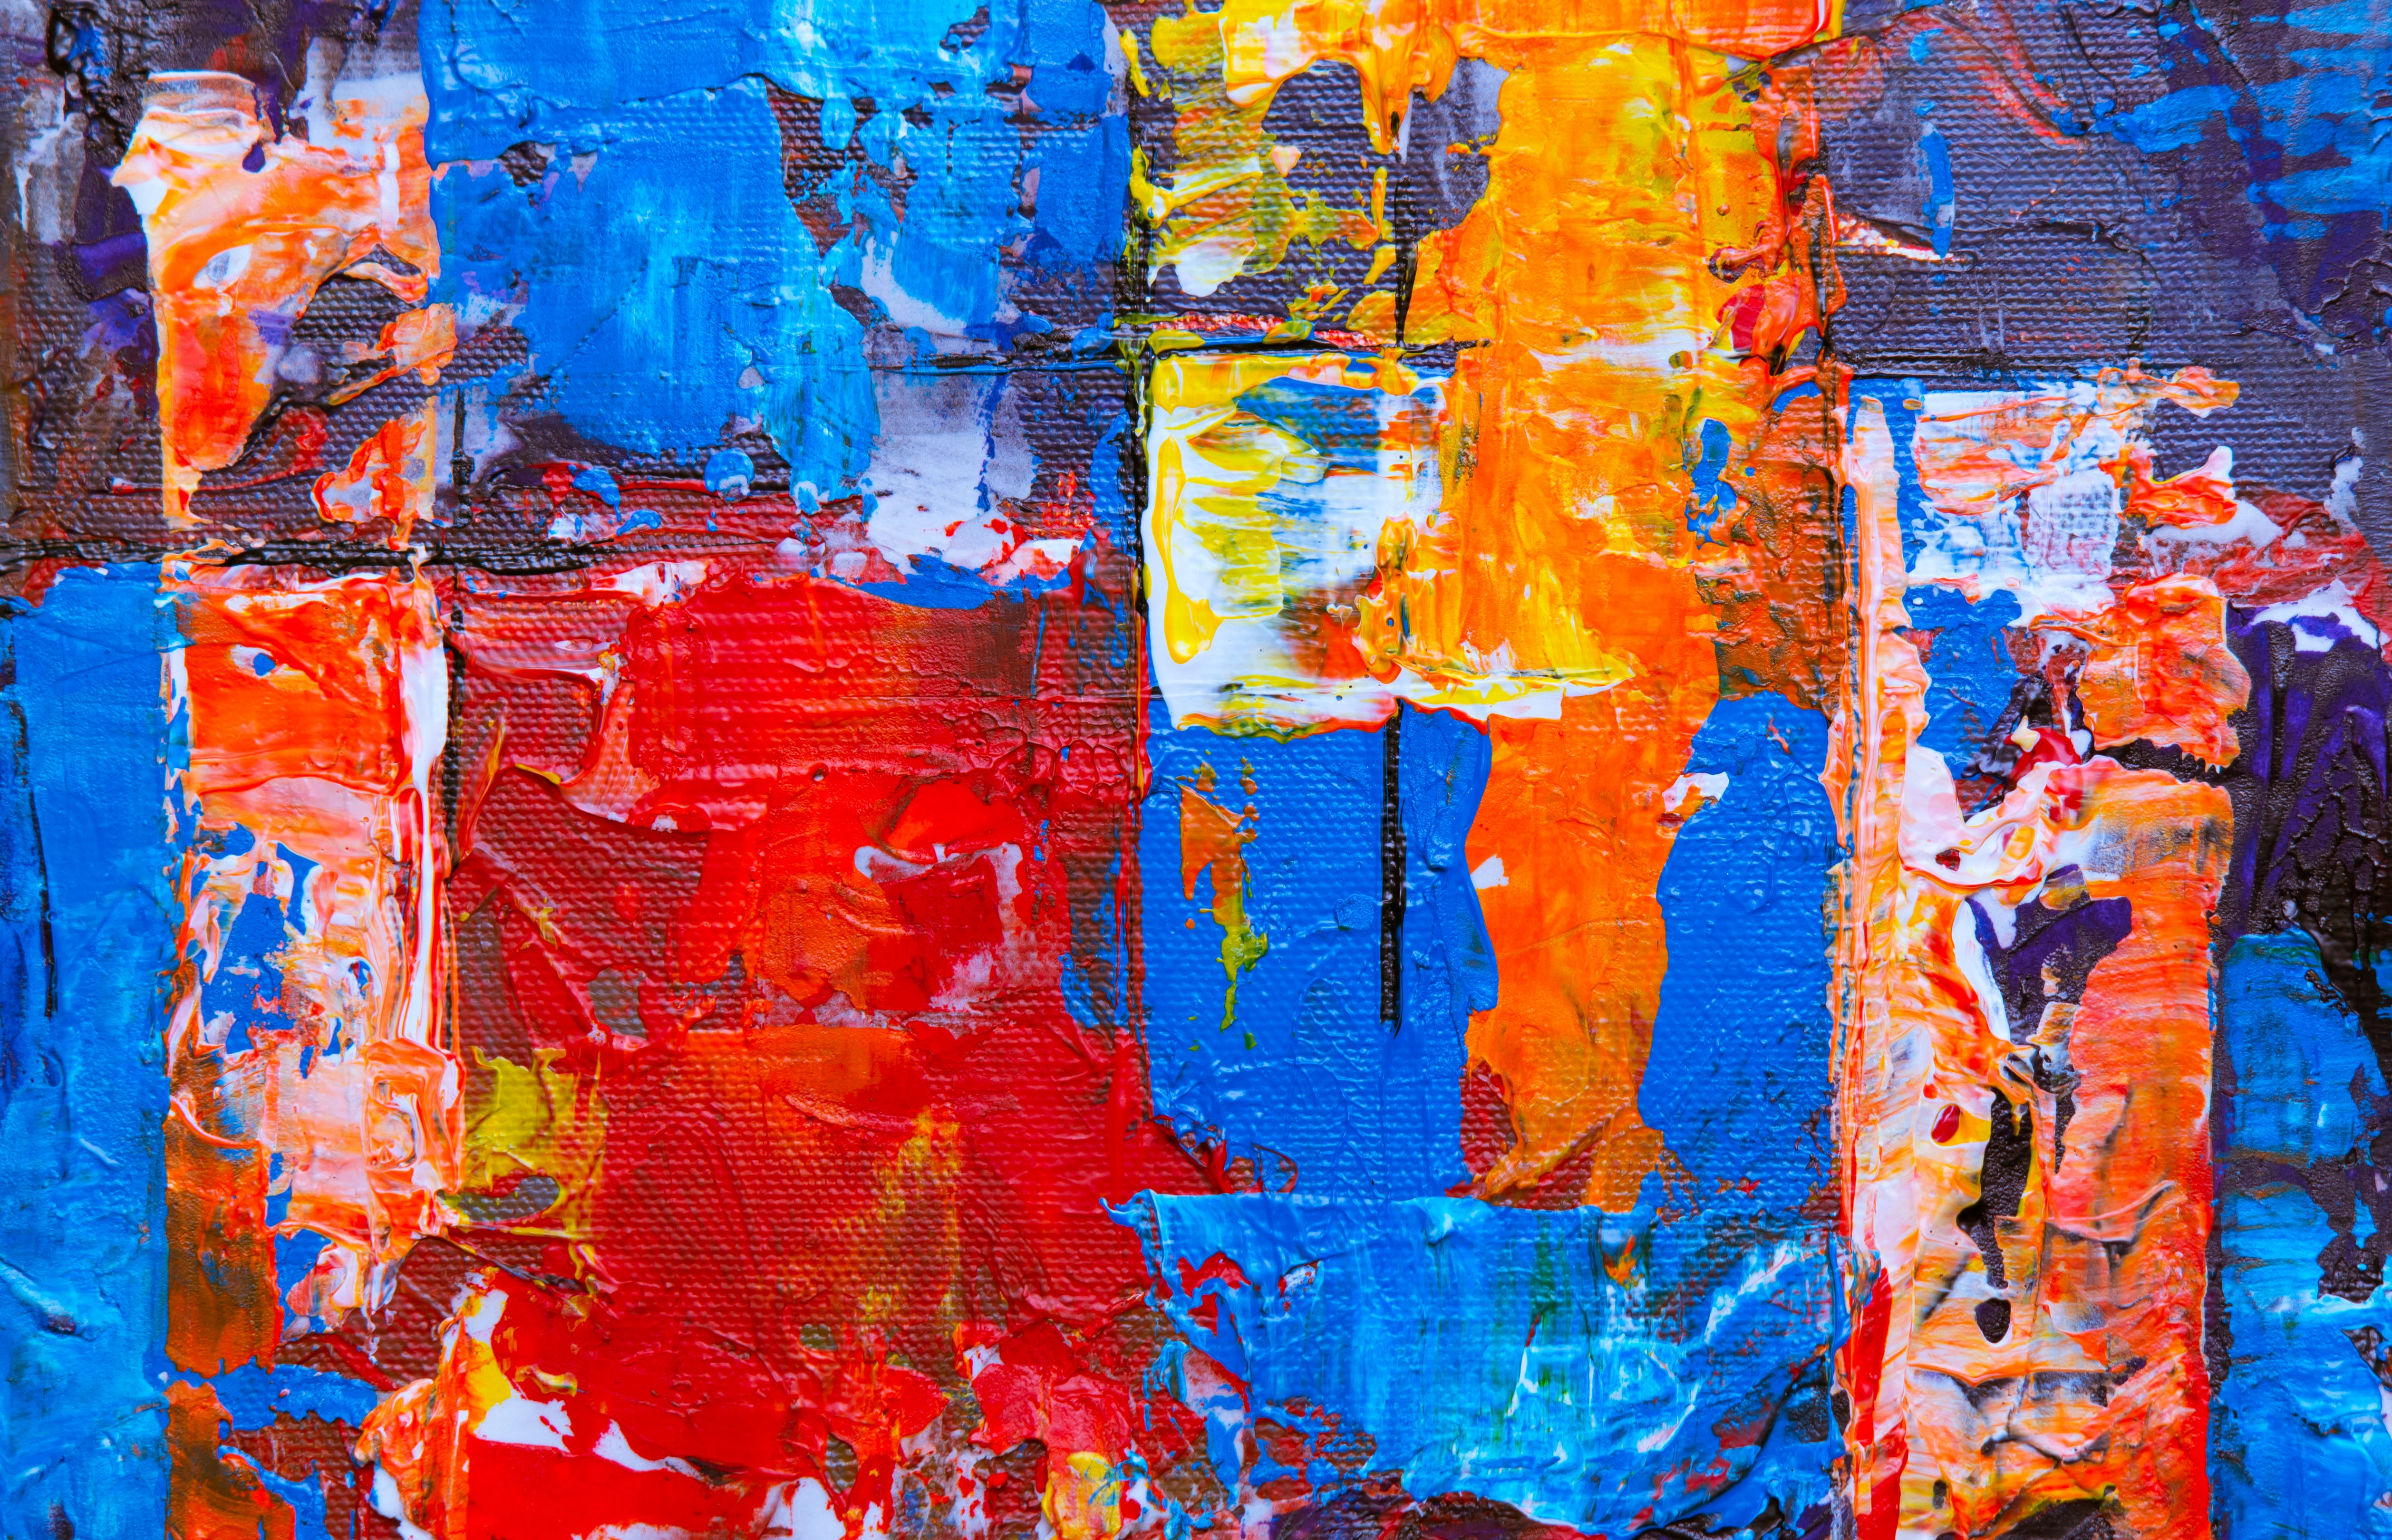 Red, Blue, and Orange Abstract Painting